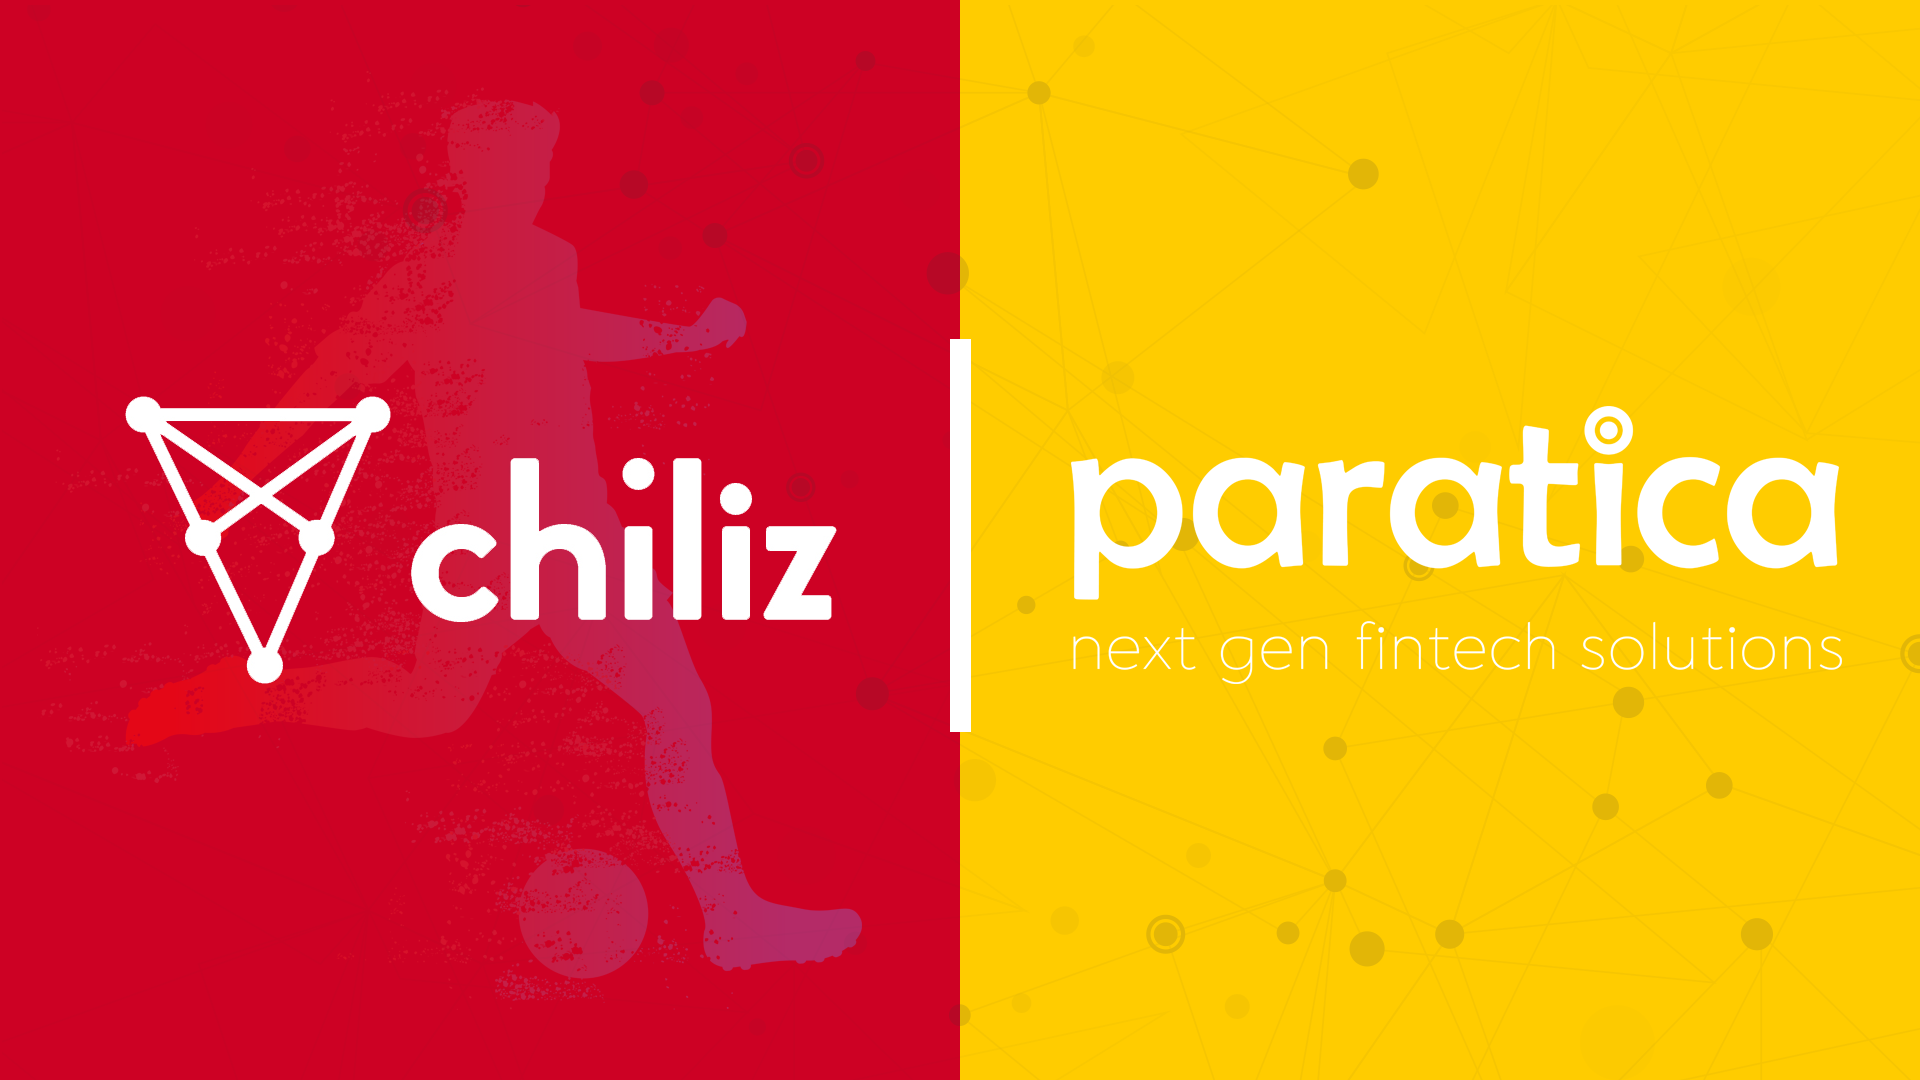 Chiliz-Paratica Partnership